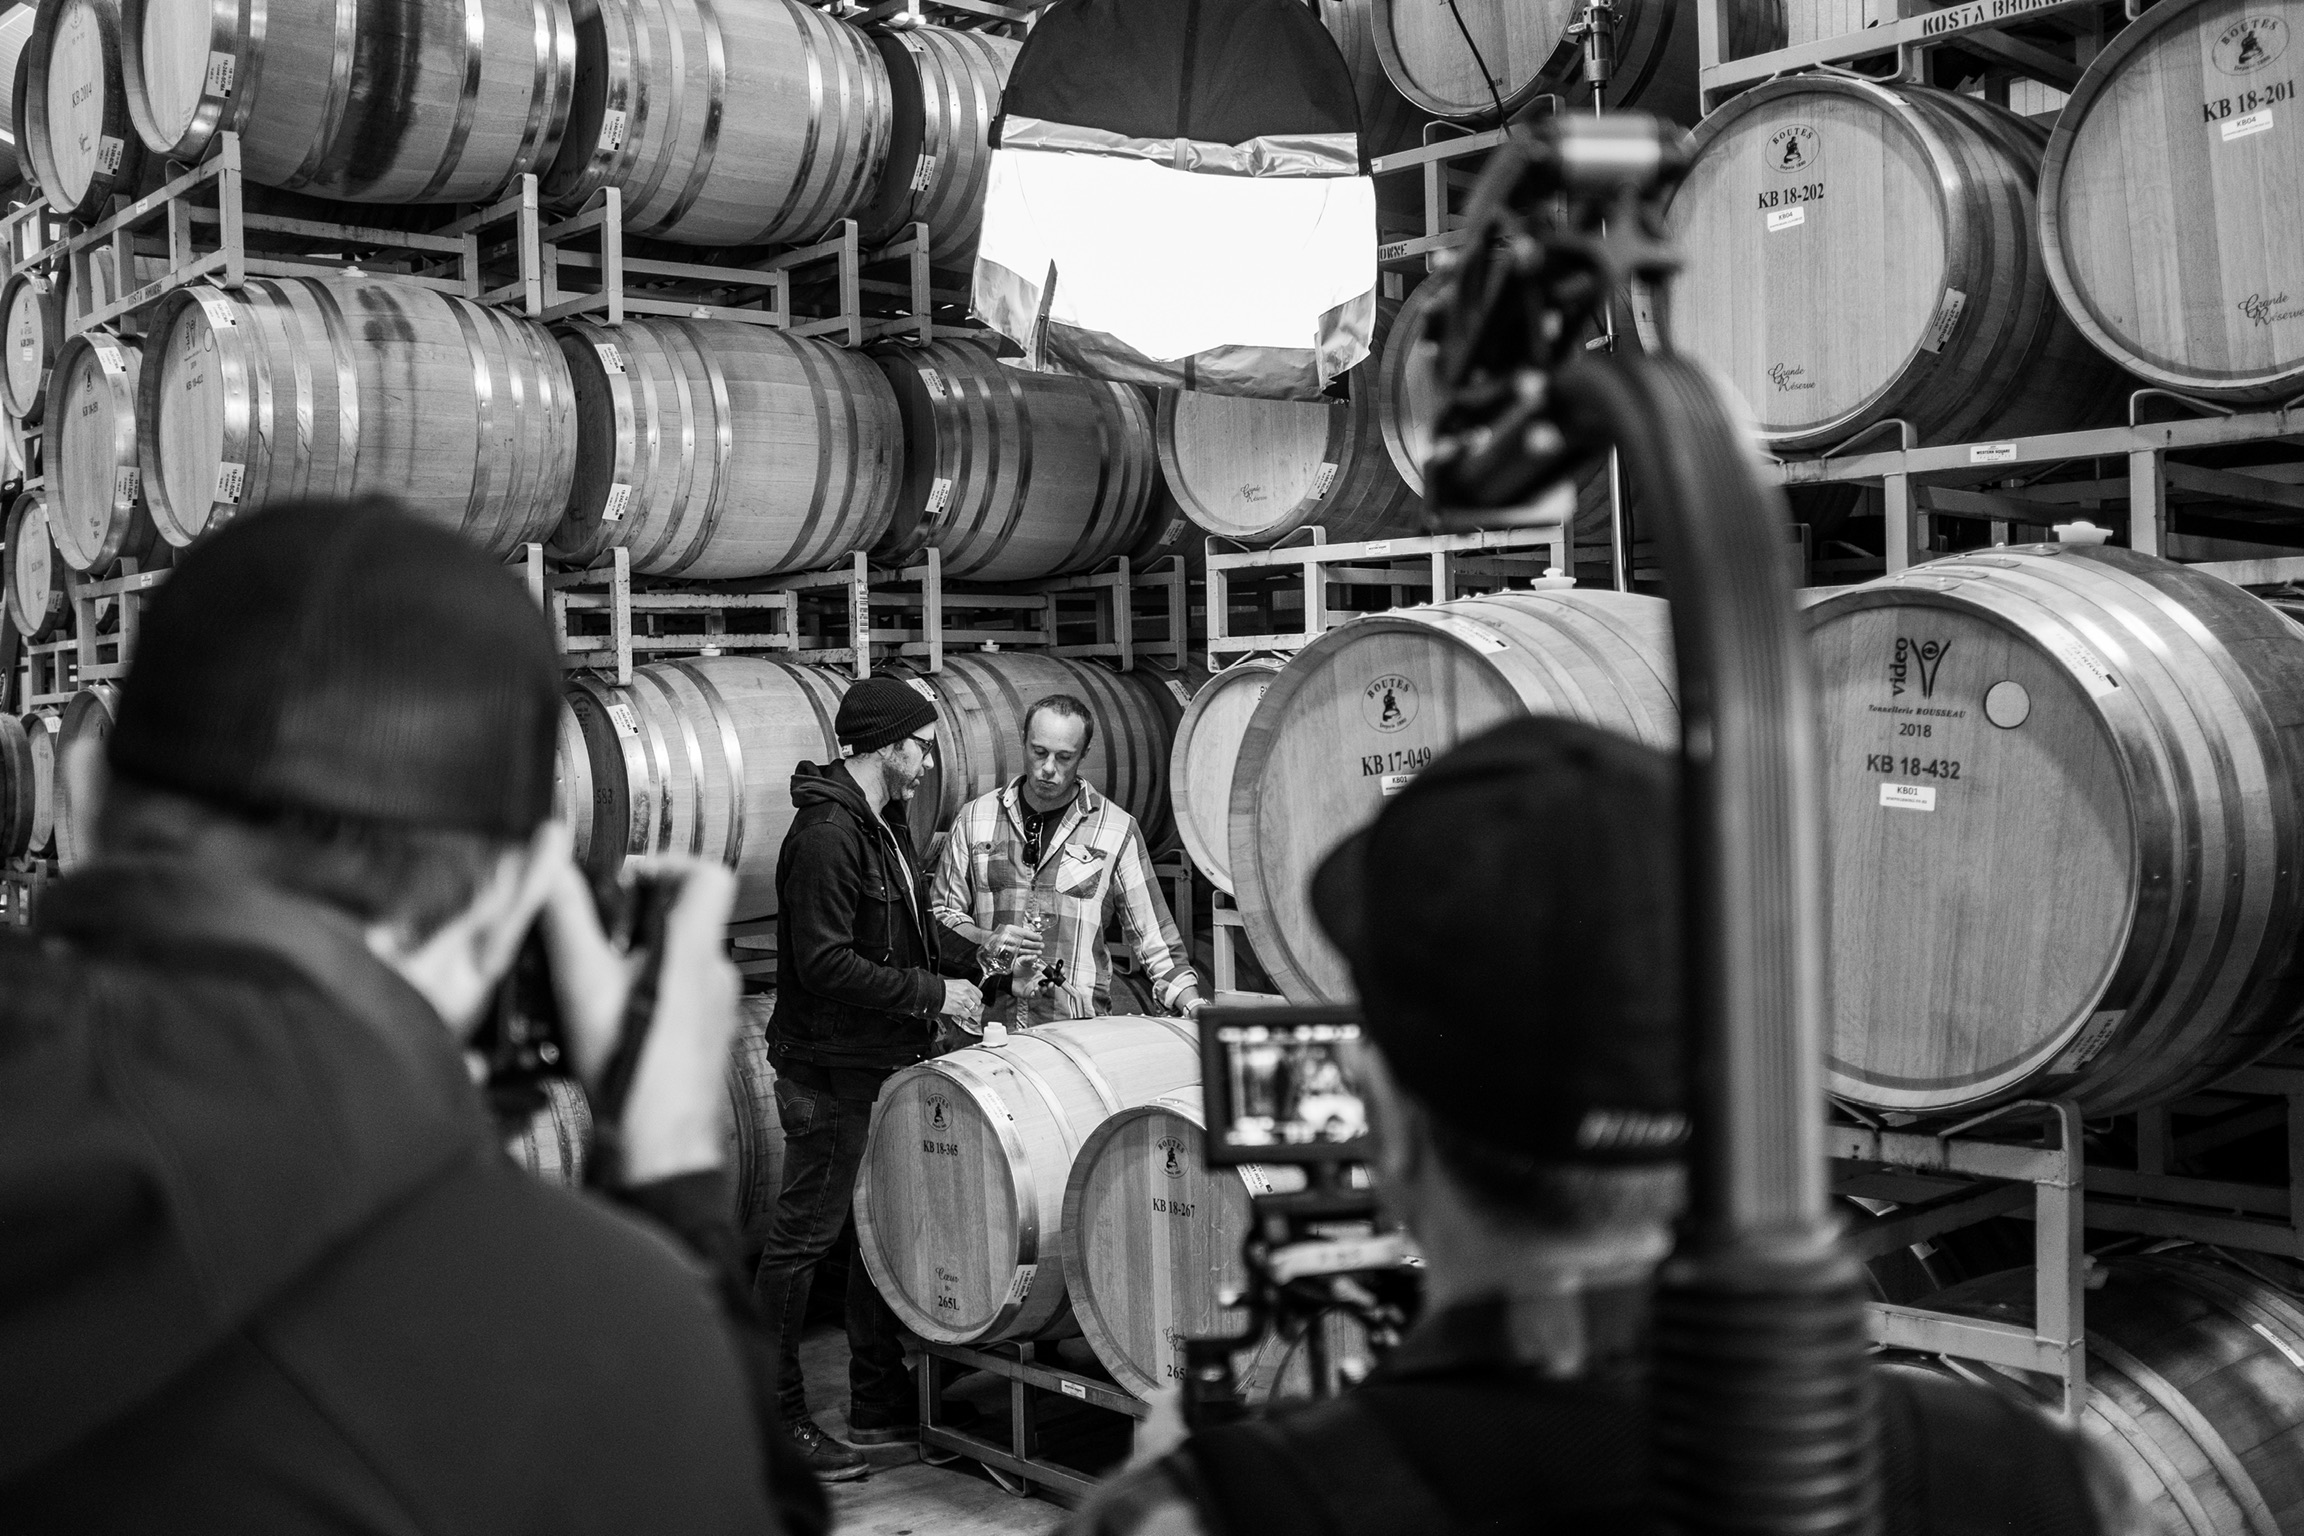 Rachid's crew shoot Mike and Nico amidst KB wine barrels